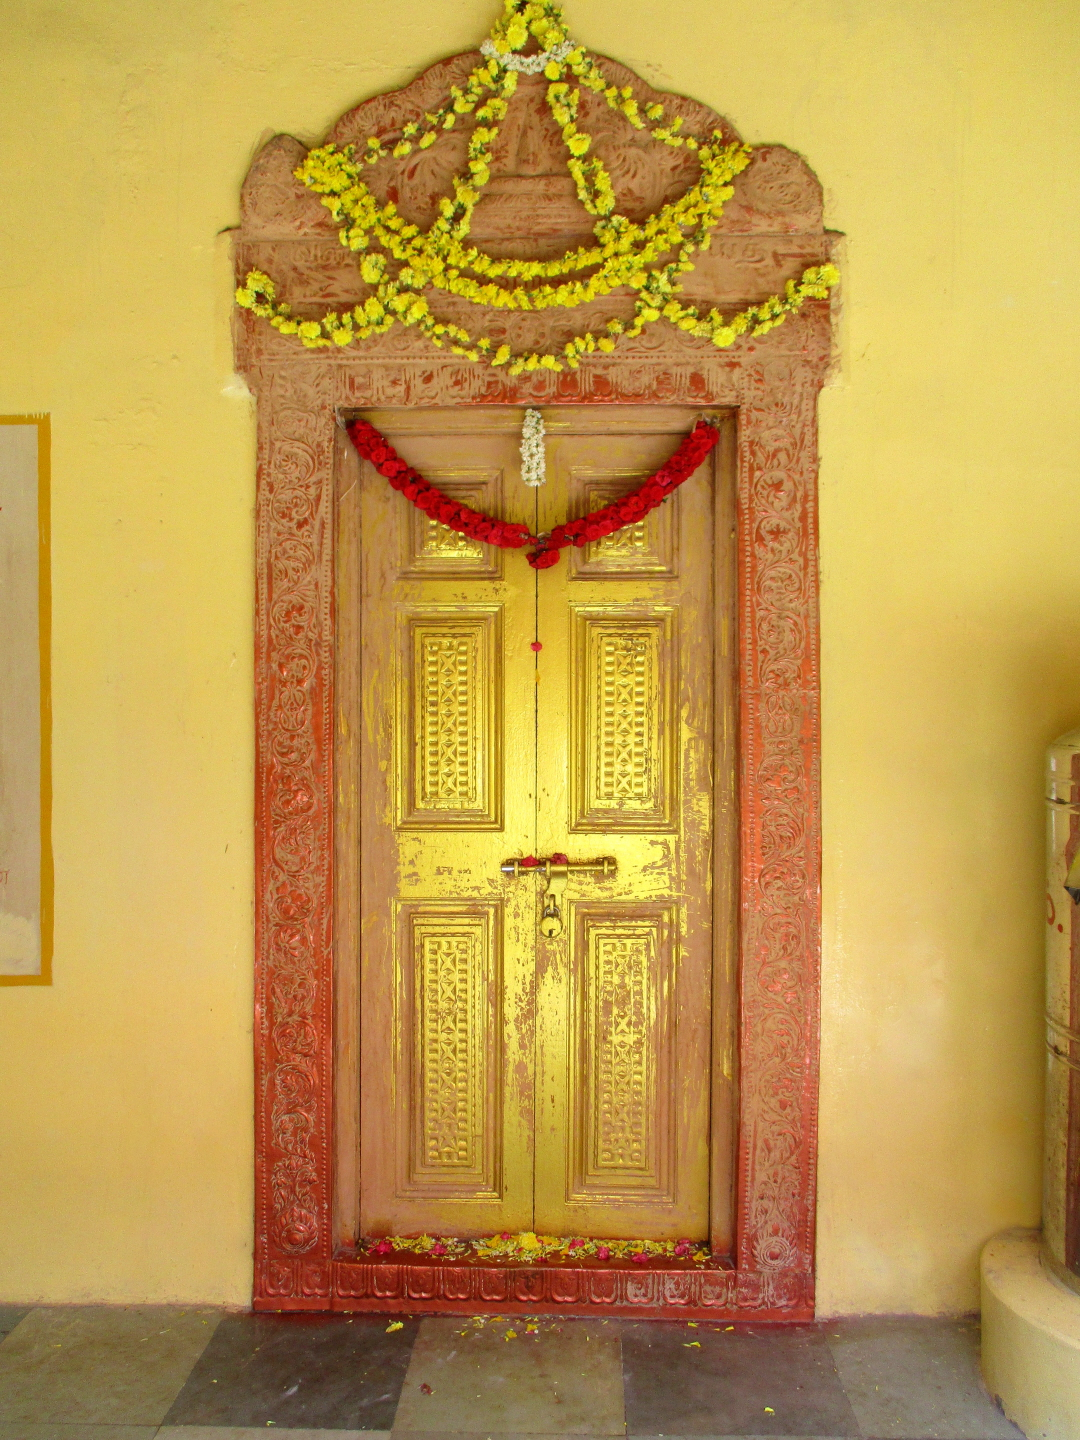 Shrine of Sri Ramalinga Swamigal Temple, where he disappeared into light behind the door